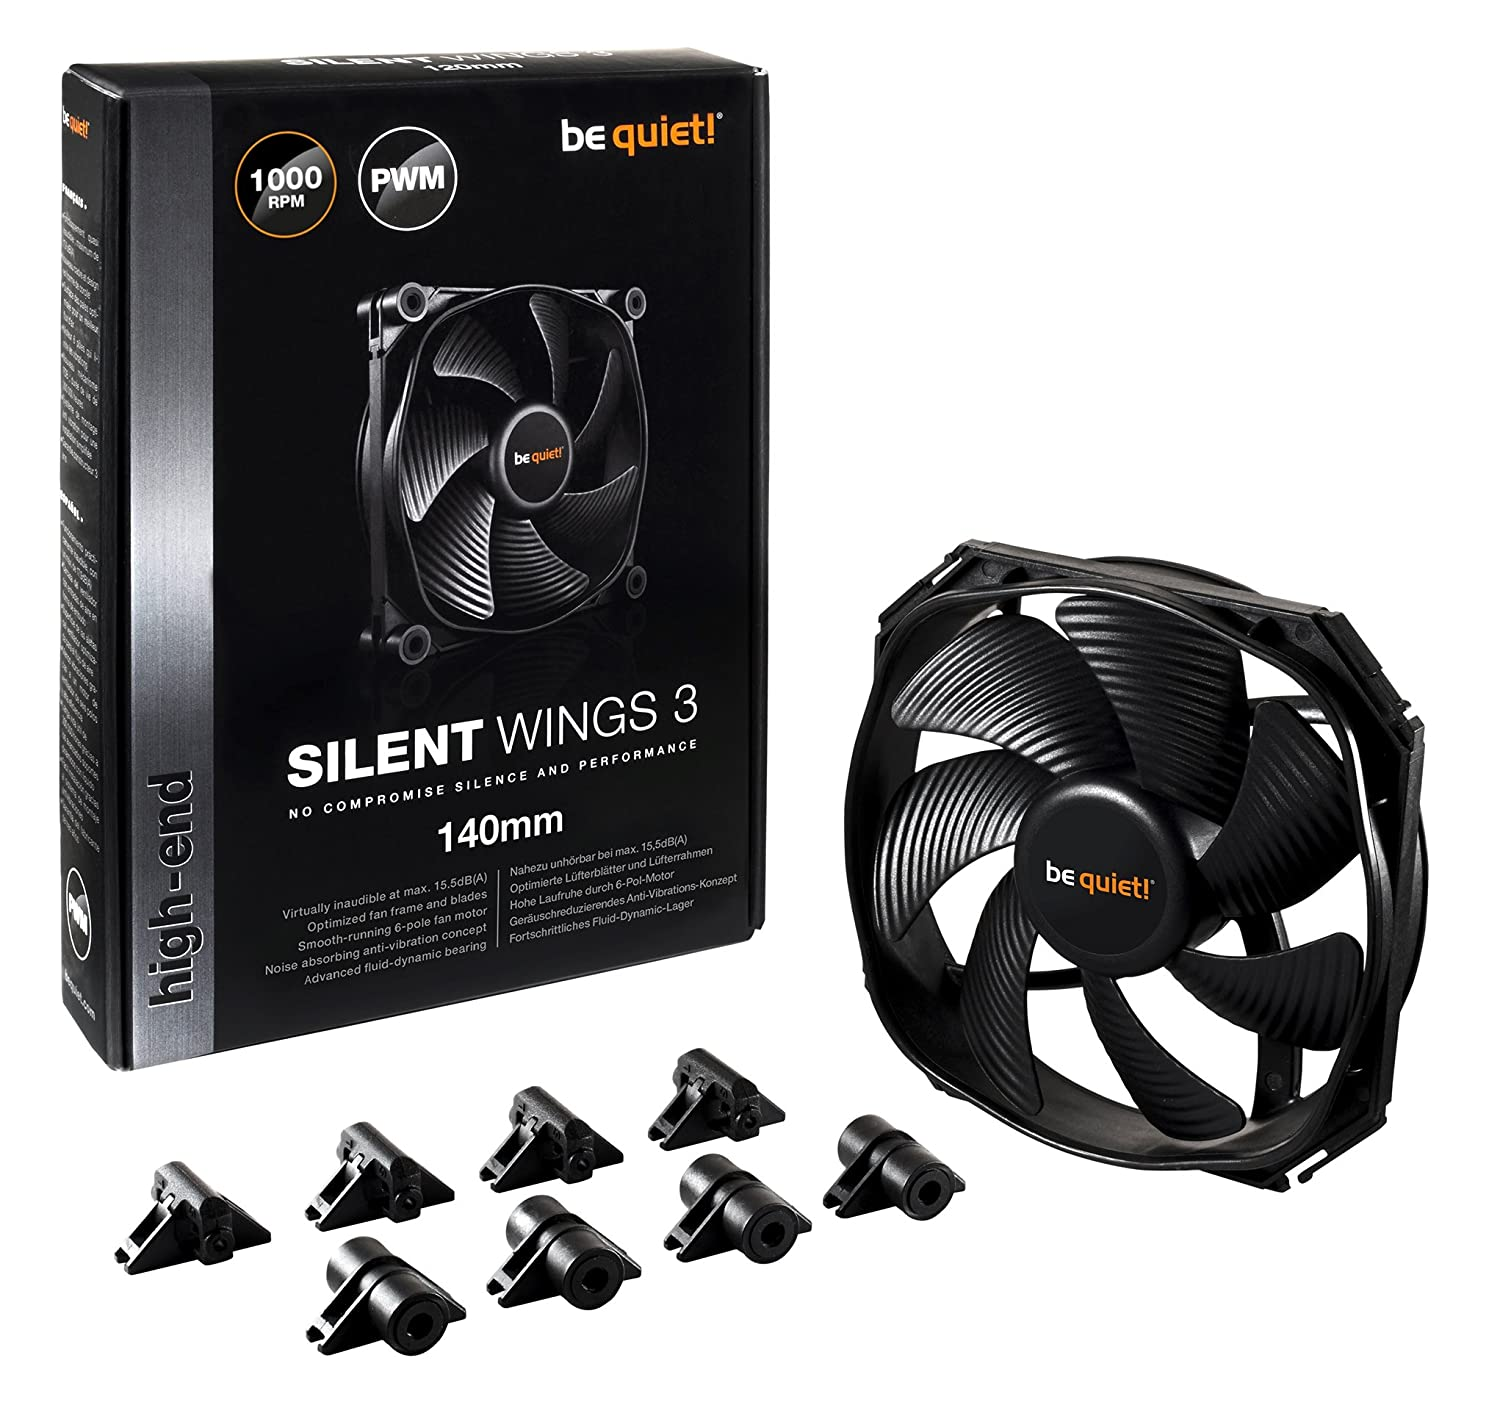 be quiet! Silent Wings 3 140 mm PWM PC Case Fan - Black